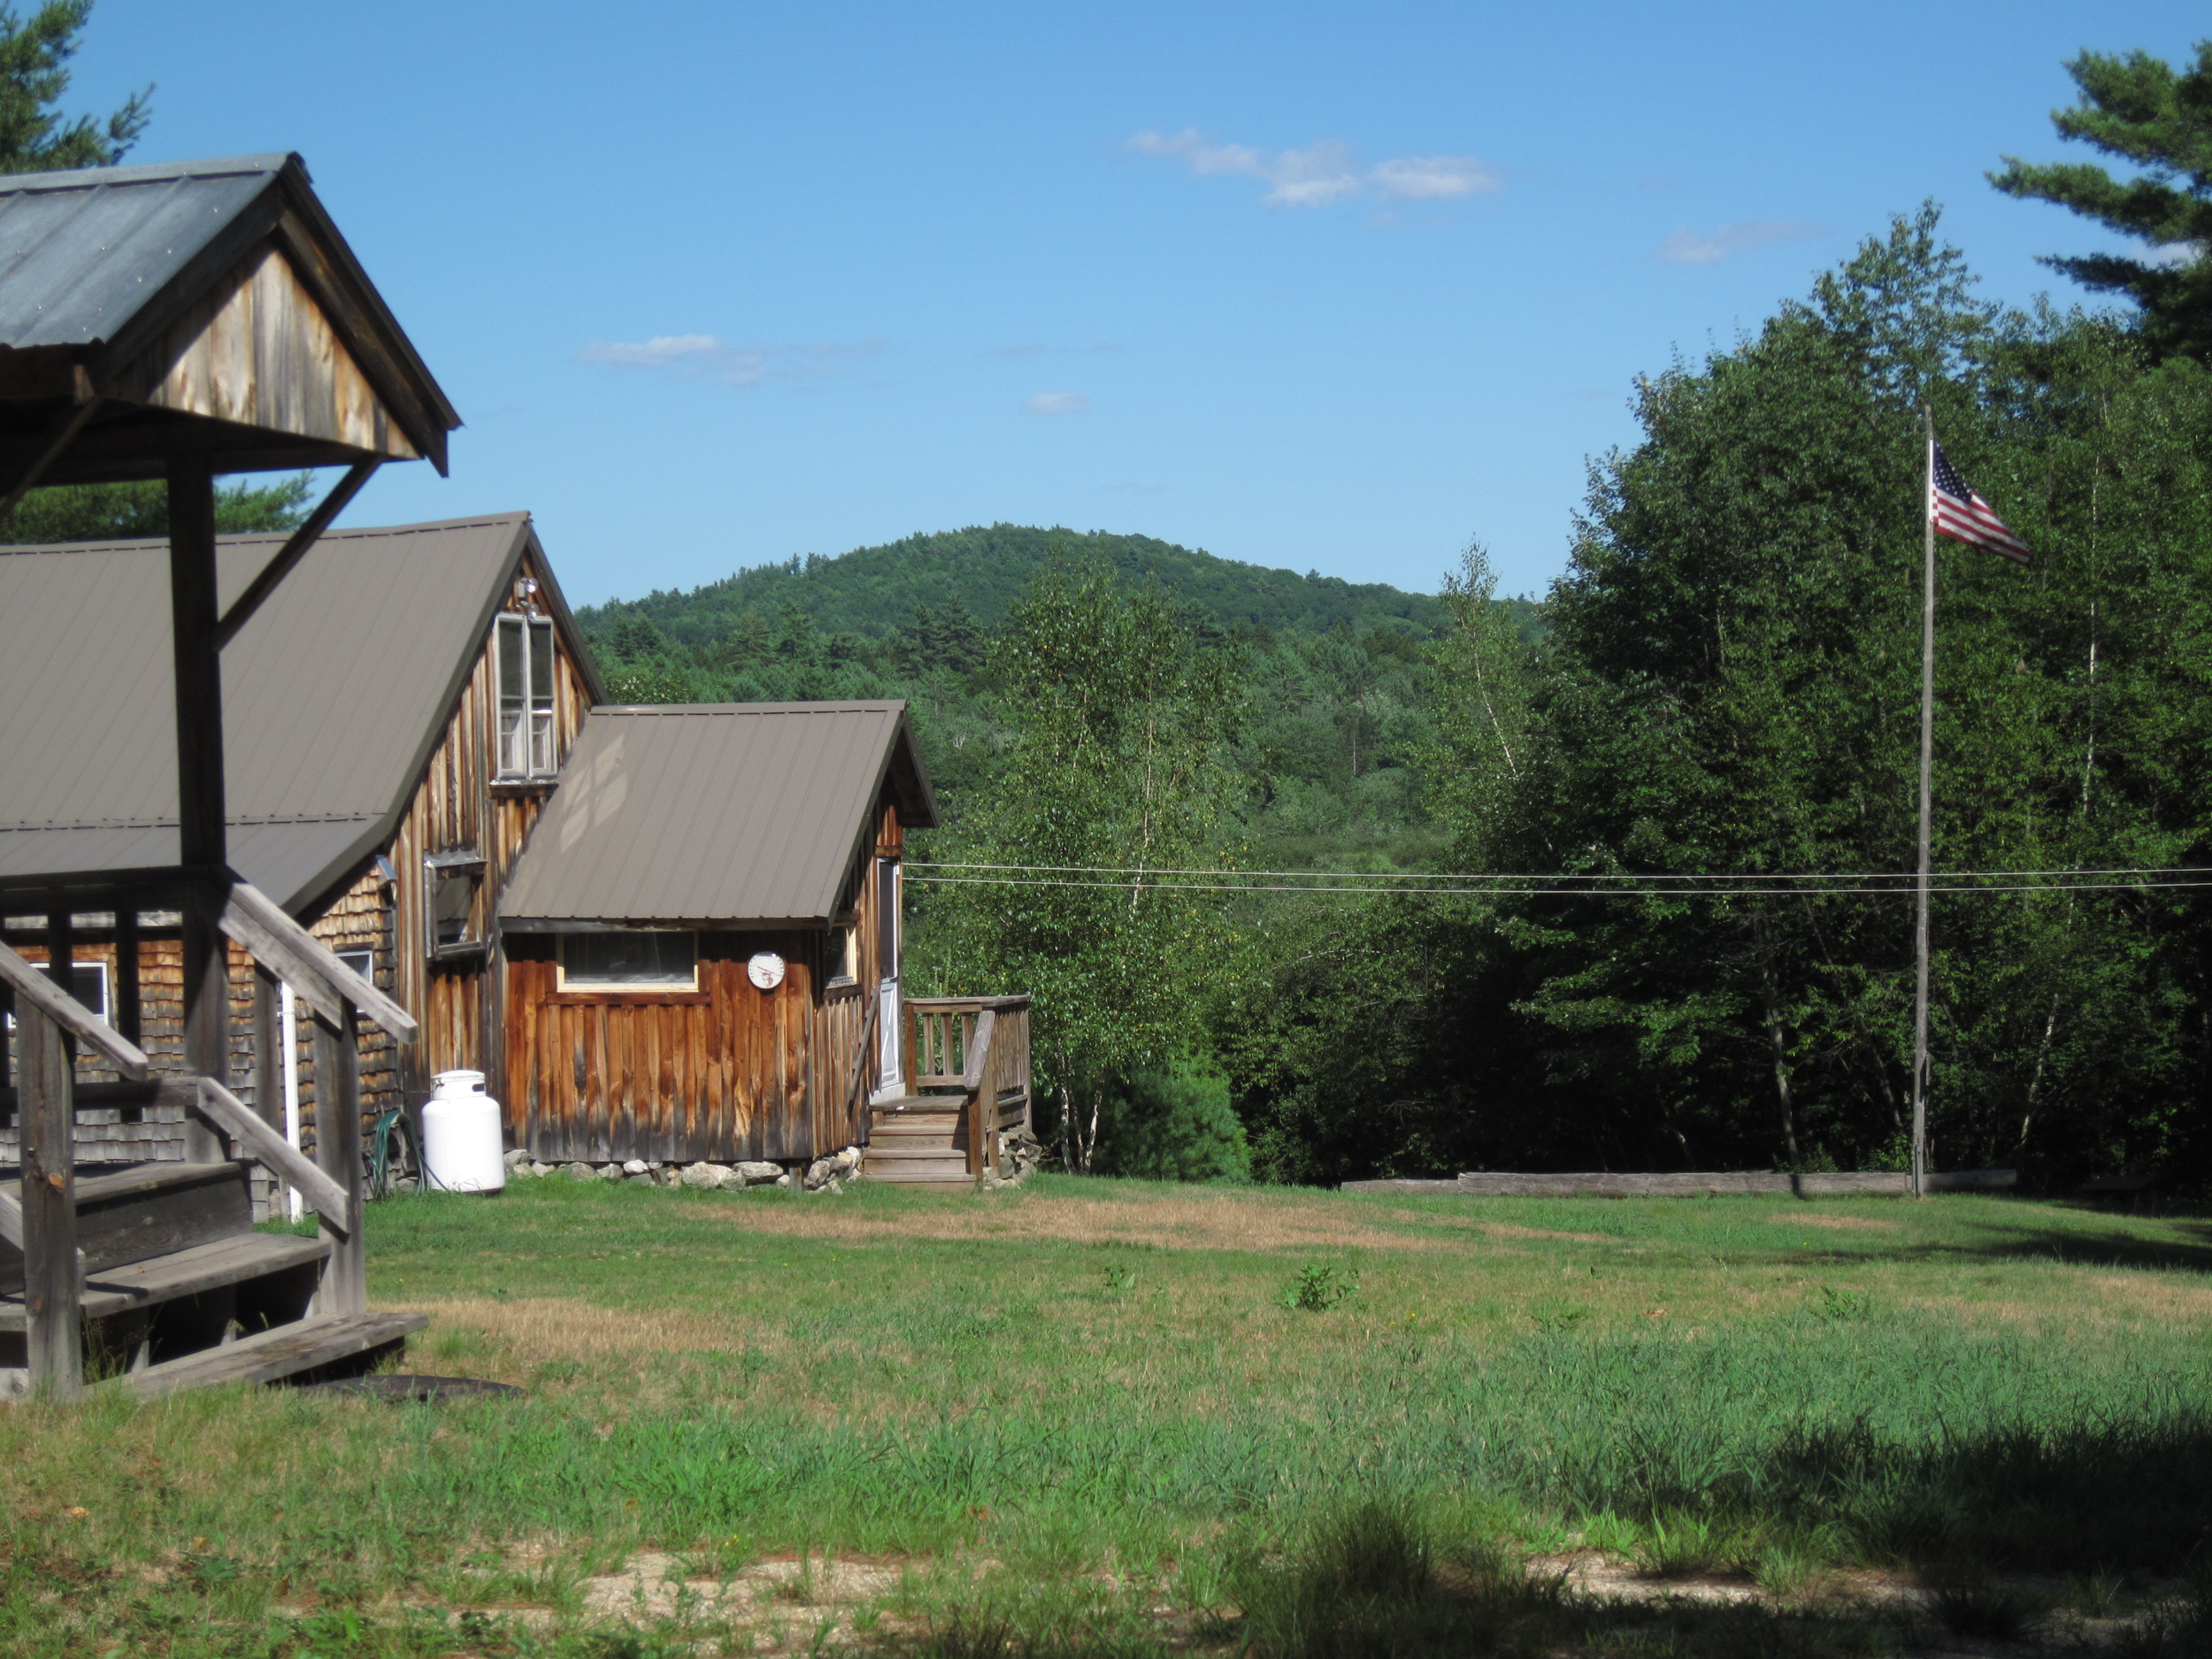 Main lodge with bunkhouse.